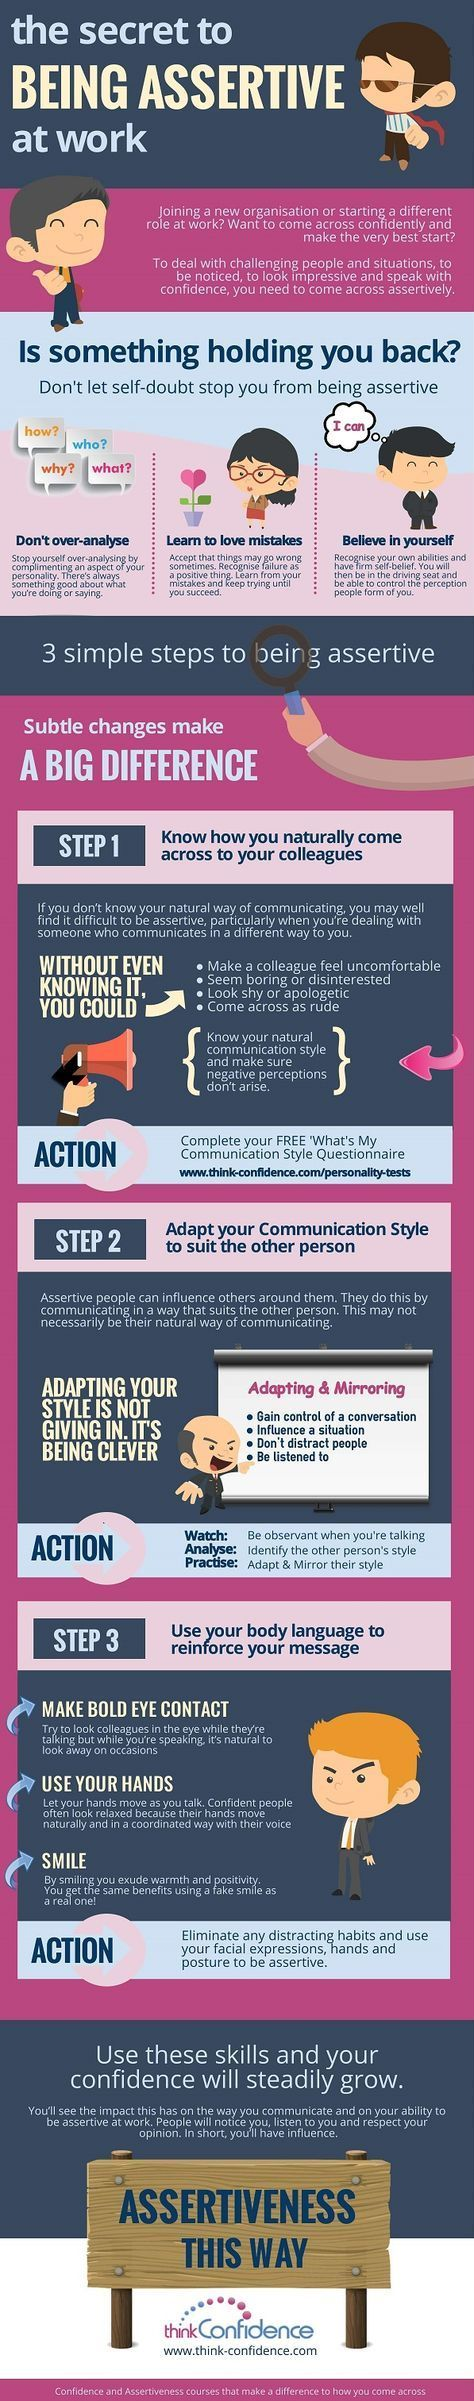 Being Assertive At Work Infographic 938 best